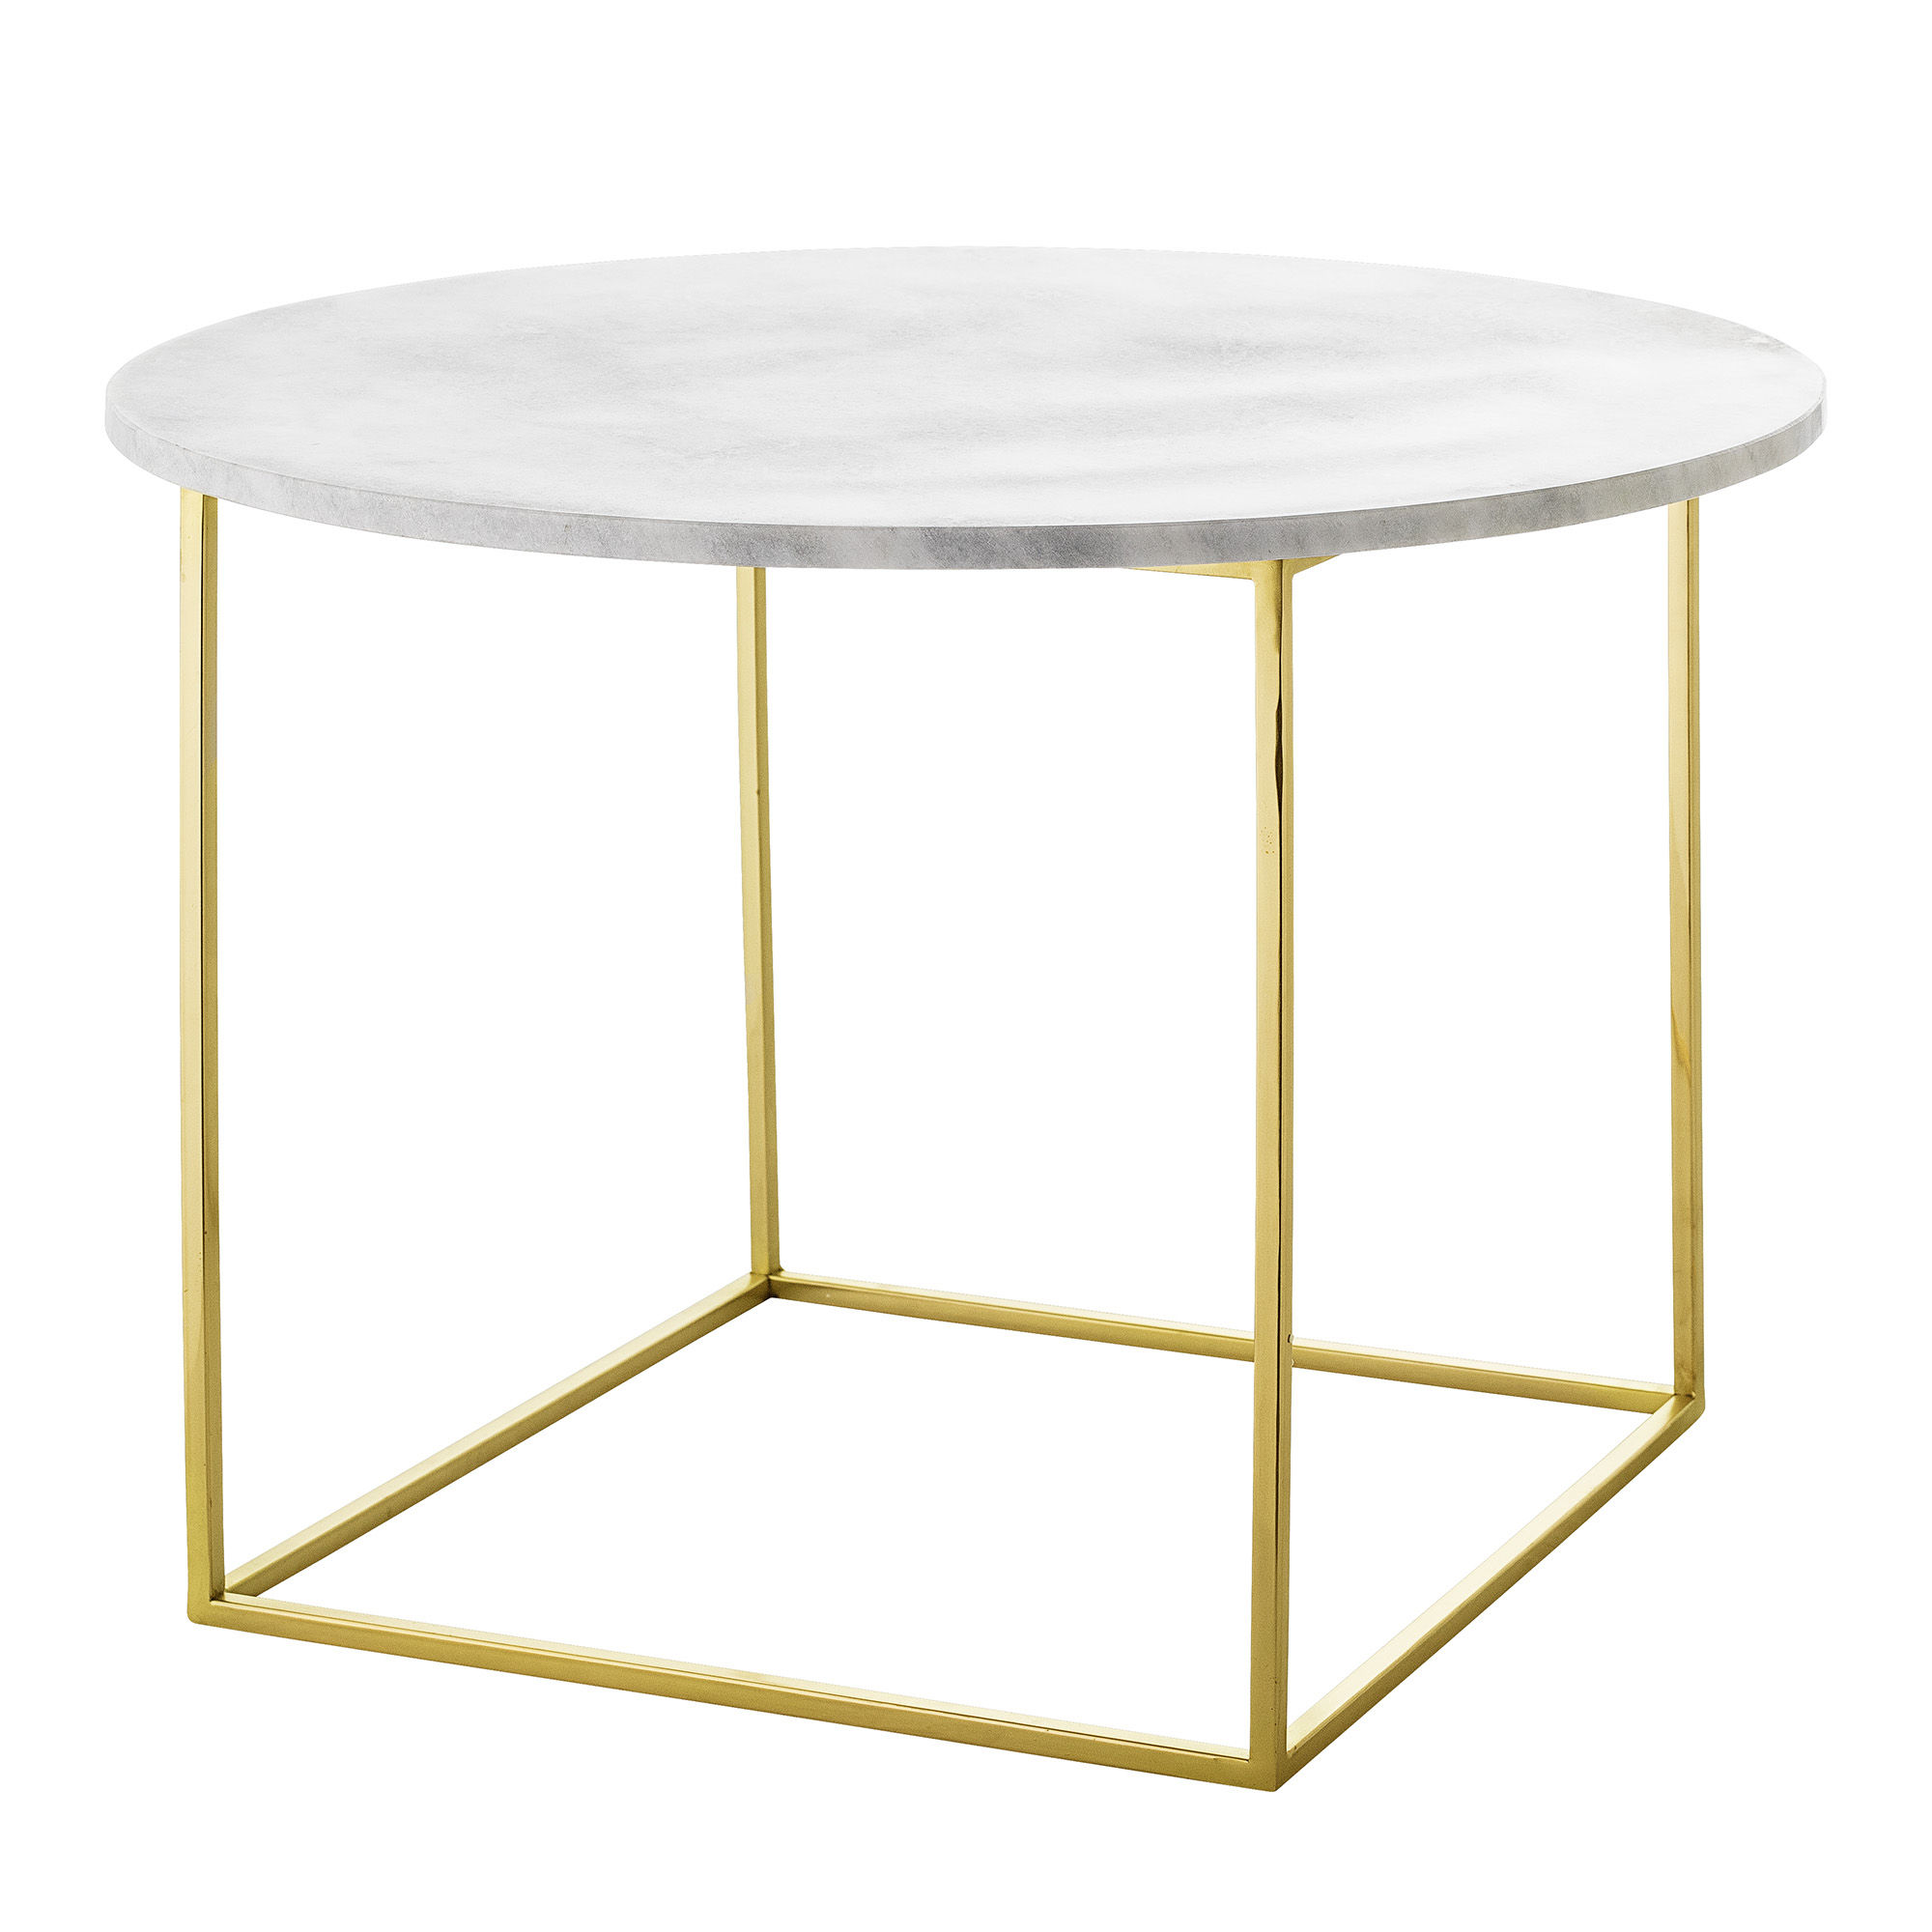 Coffee Table Eva By Bloomingville Whitegoldmetal Made In Design Uk